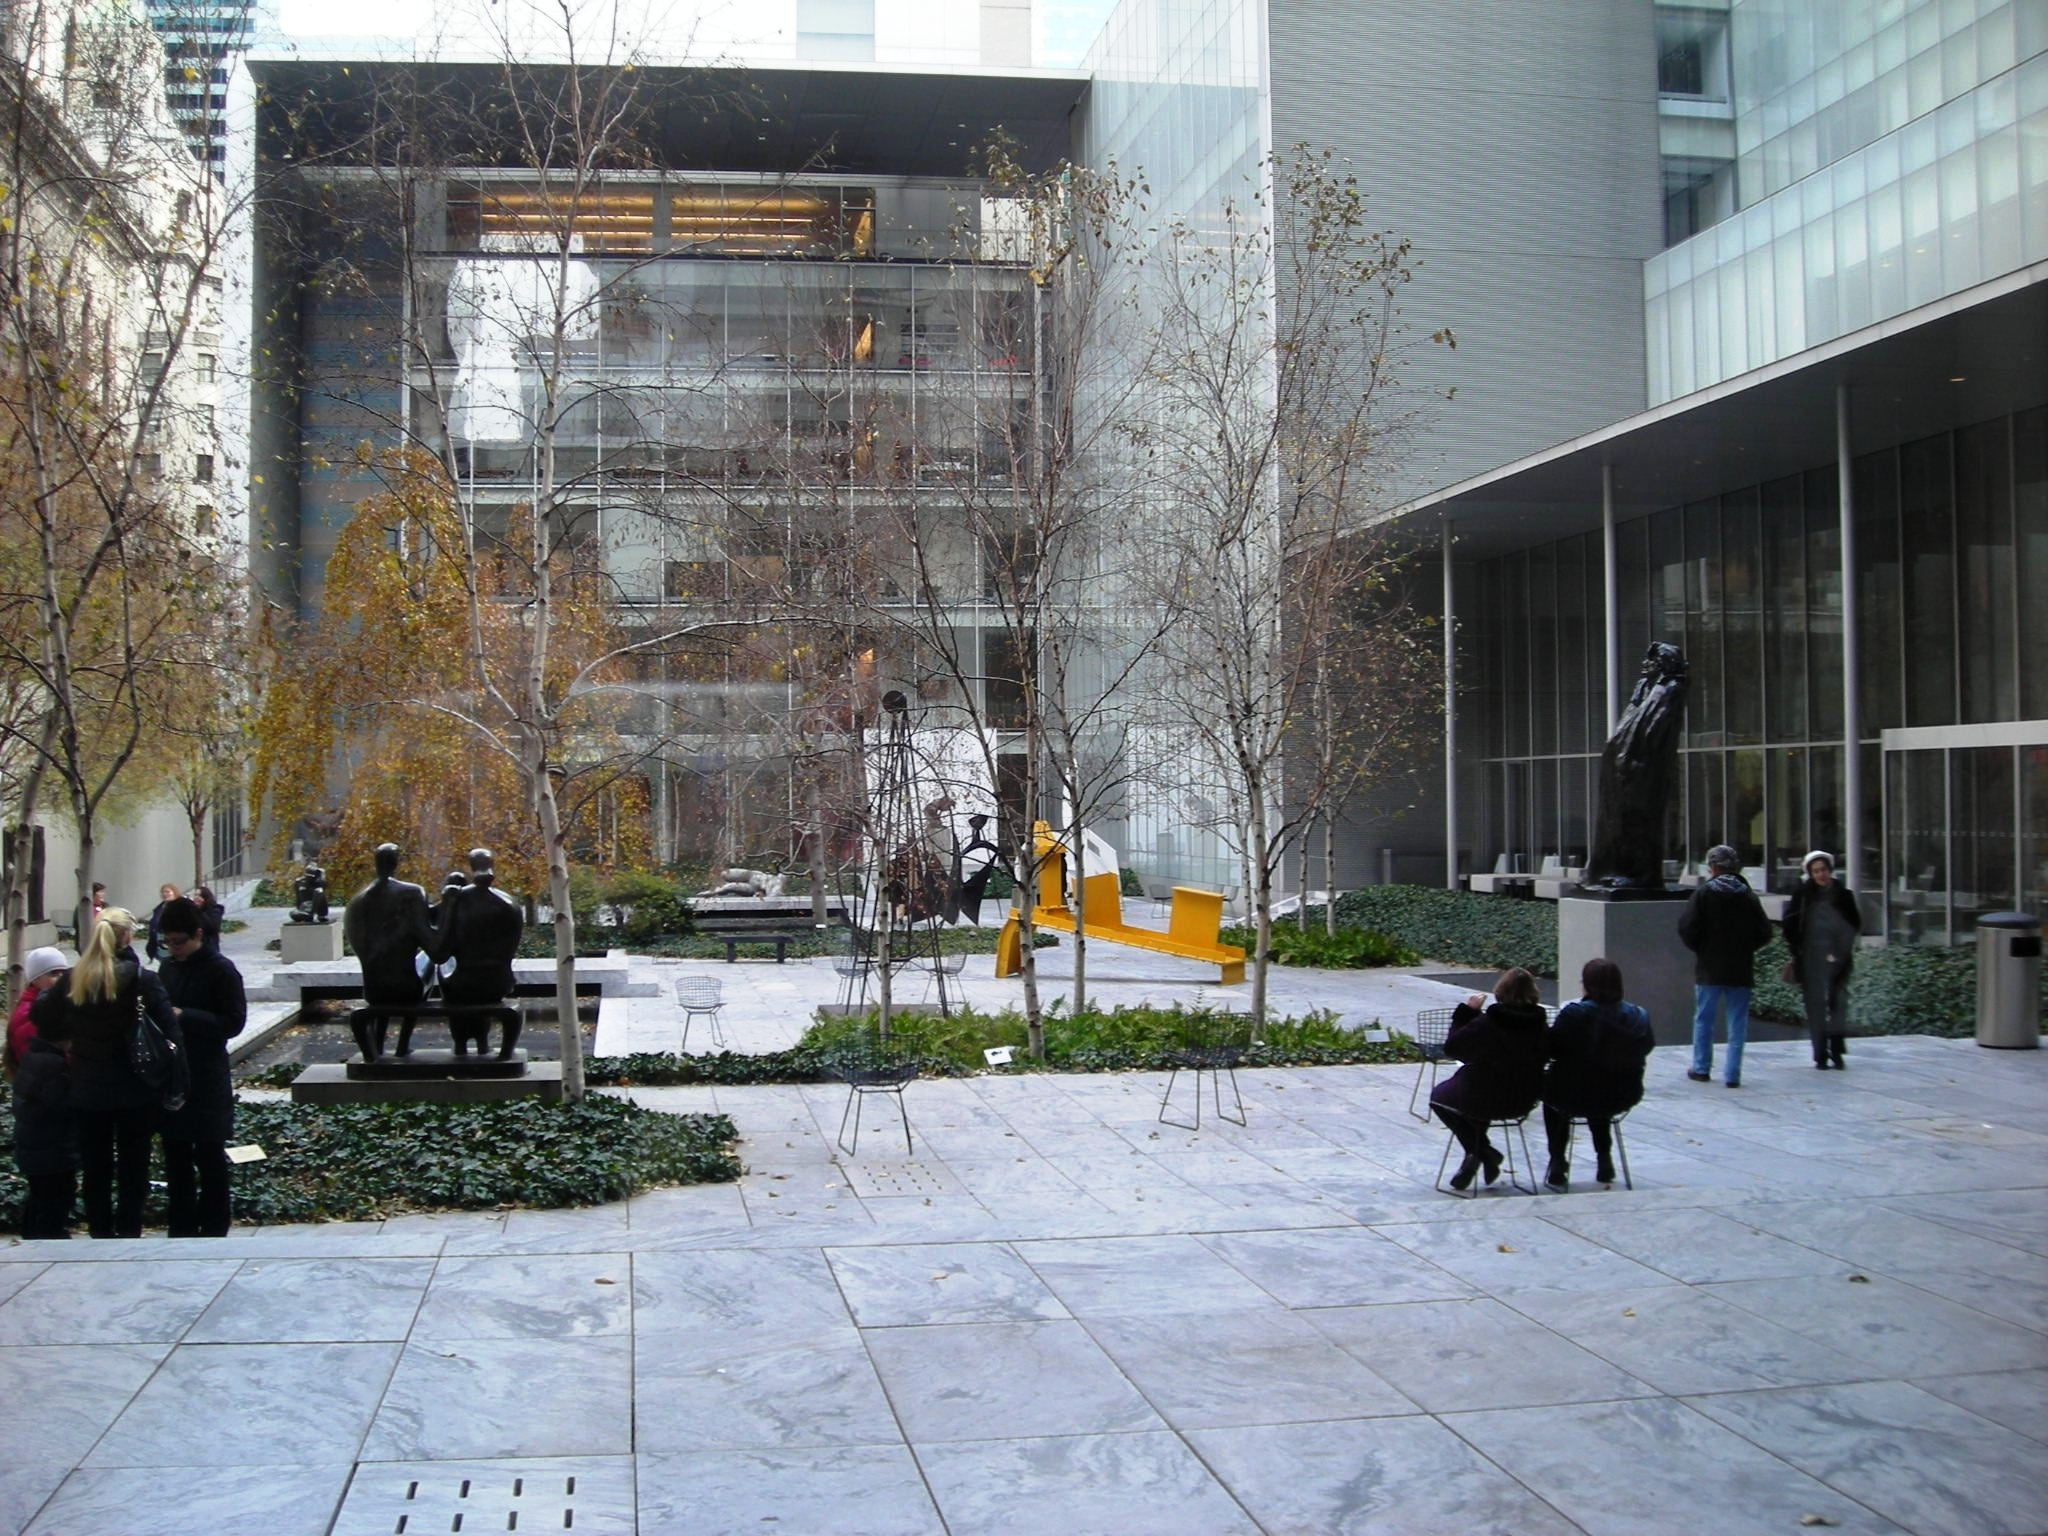 Plaza en Museum of Modern Art - MoMA